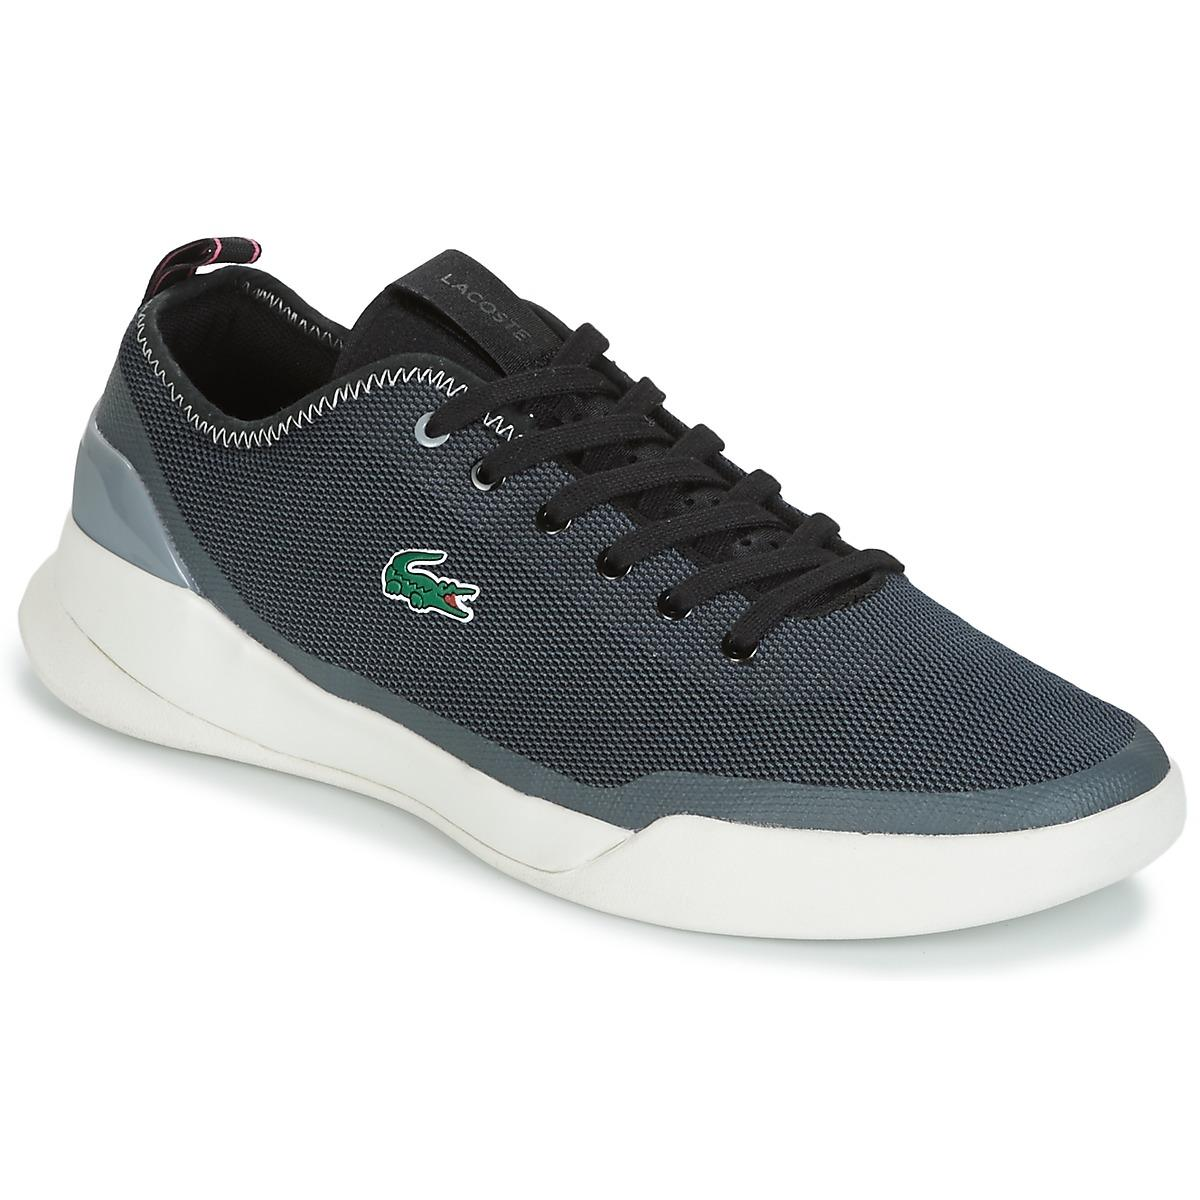 2233c3a58c9316 Lacoste Lt Dual 118 1 Men s Shoes (trainers) In Black in Black for ...